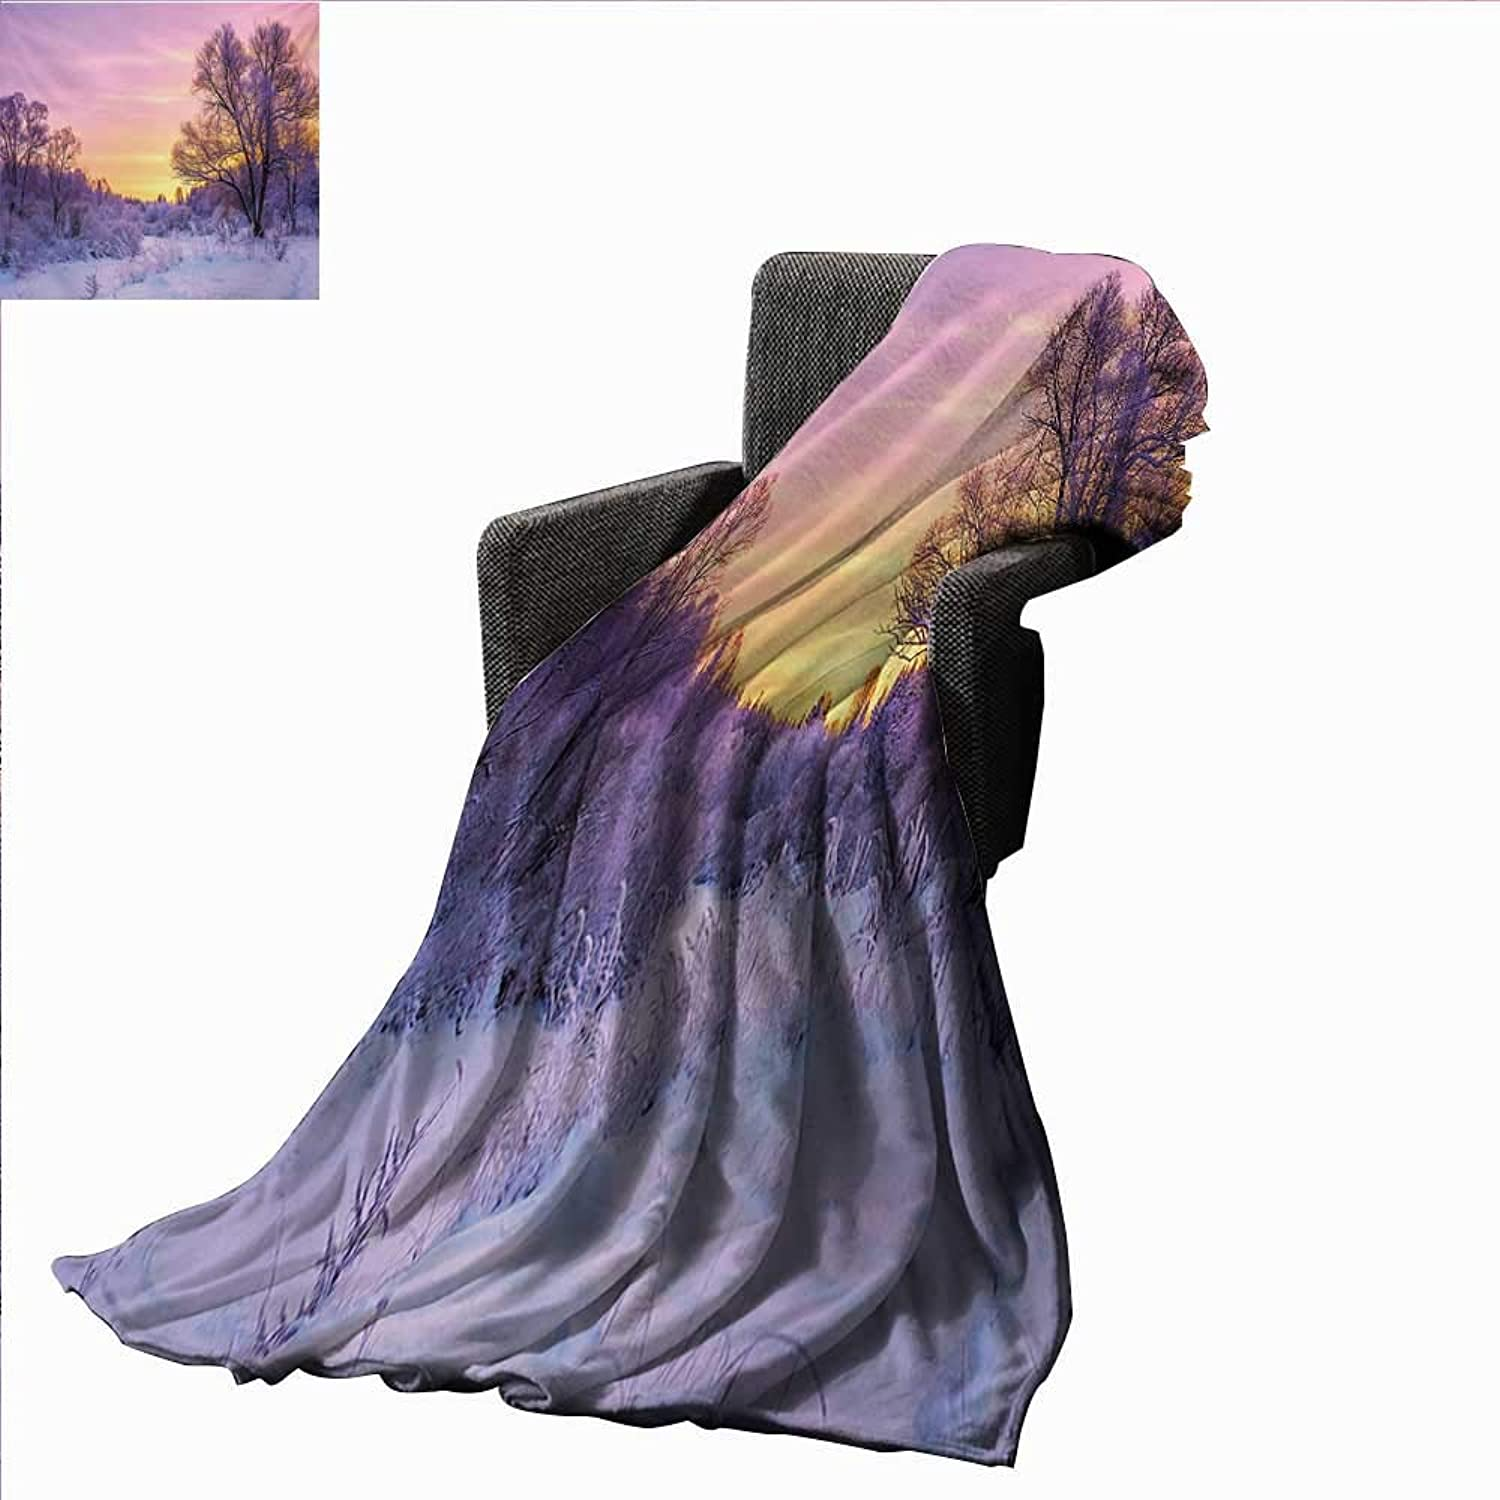 Forest Super Soft Lightweight Blanket Winter Landscape with Sunset and Frozen Trees Ice Weather Blizzard Cold Days Image,Super Soft and Comfortable,Suitable for Sofas,Chairs,beds